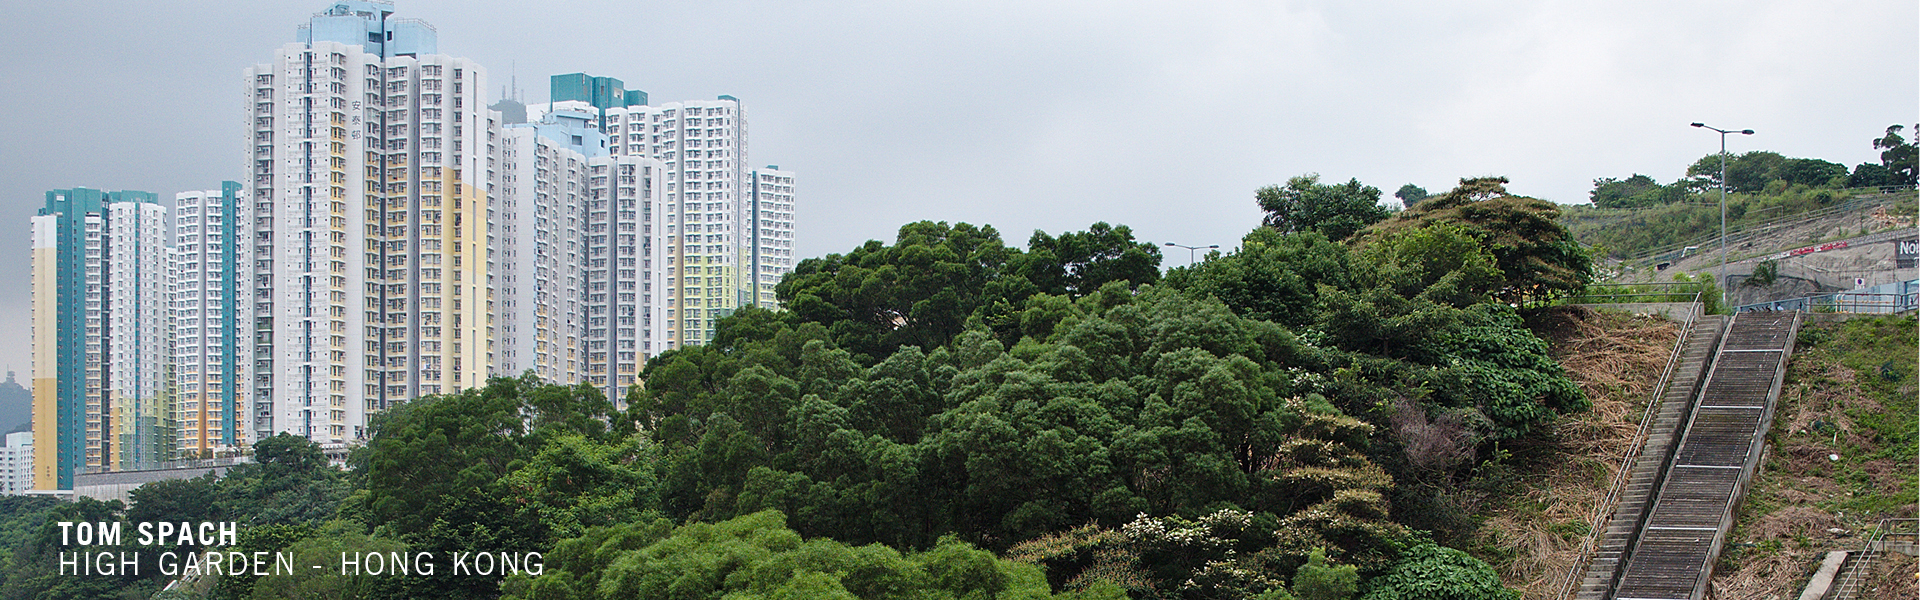 Tom Spach: Hong Kong High Garden